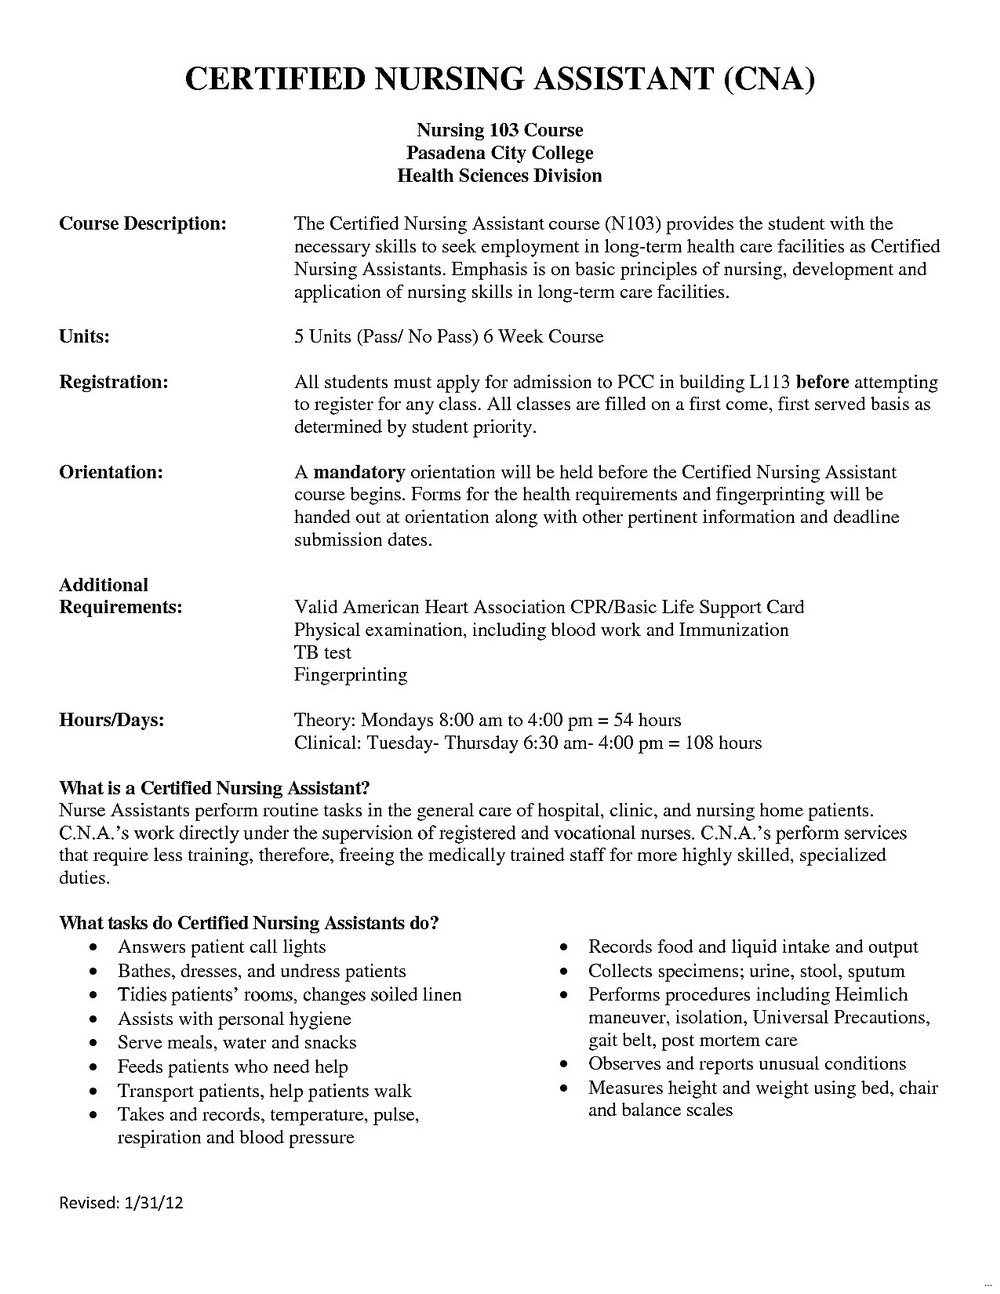 Resume Description For Nursing Assistant